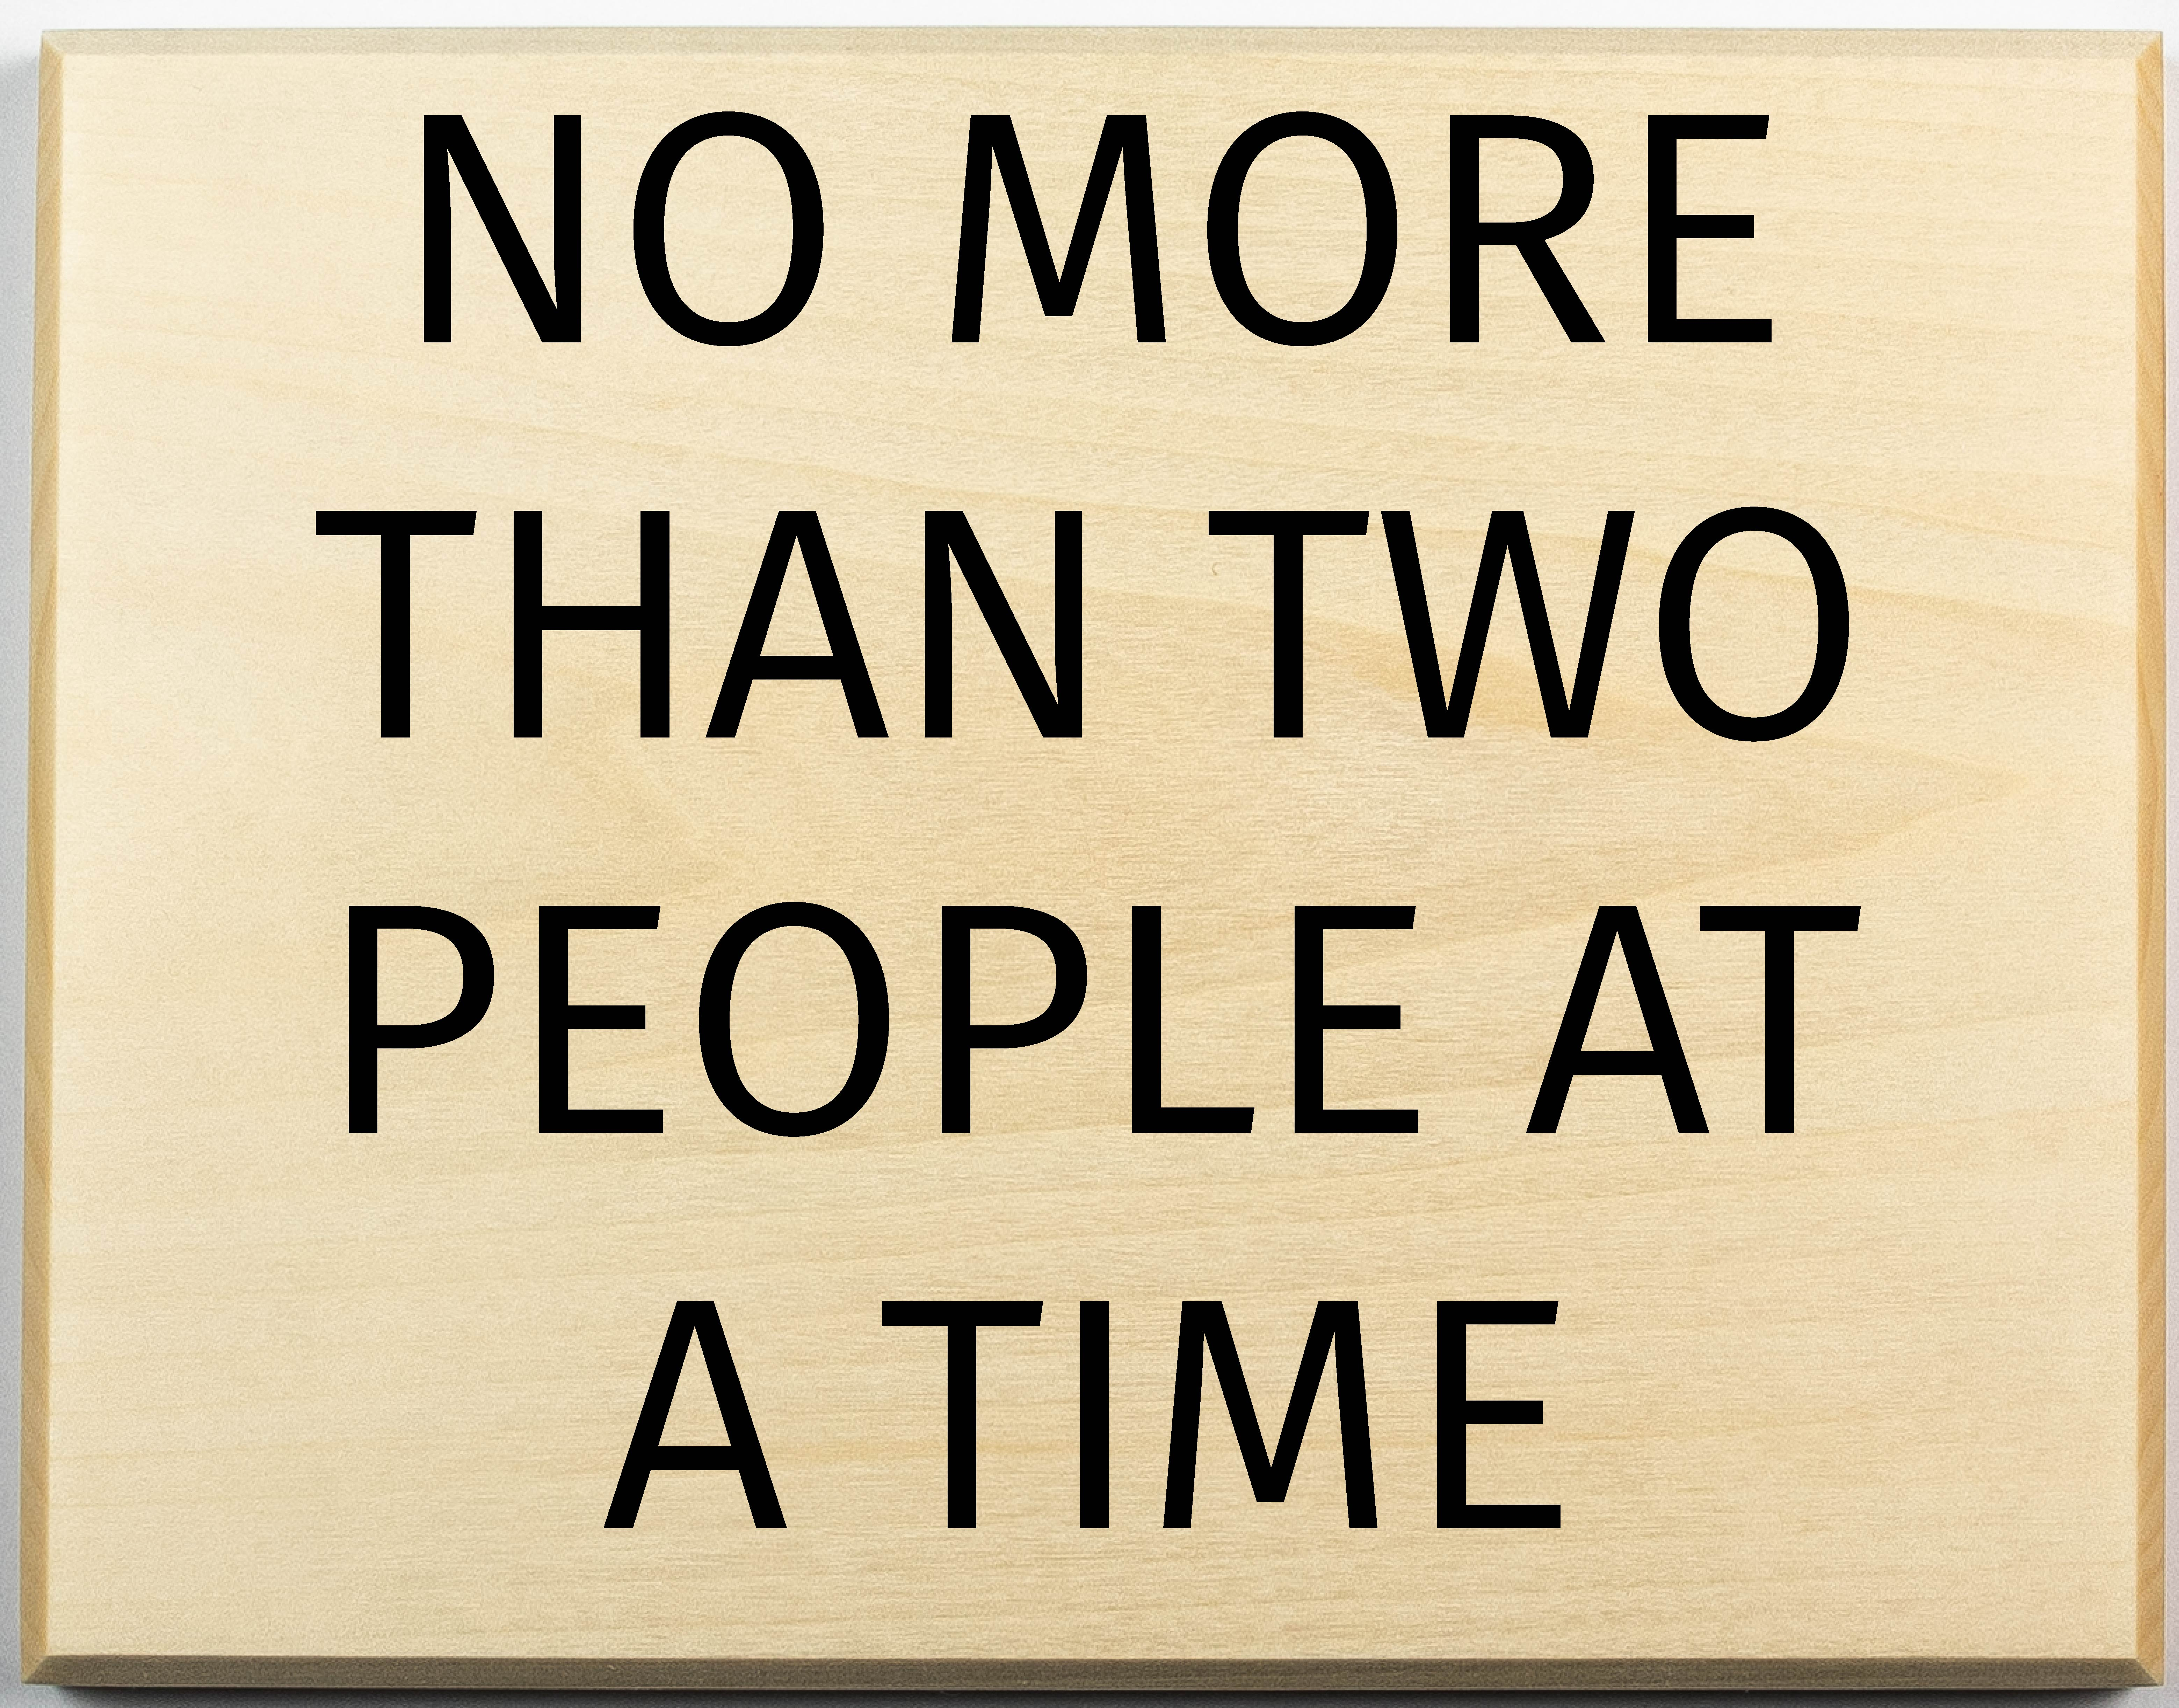 Two People at a Time Sign